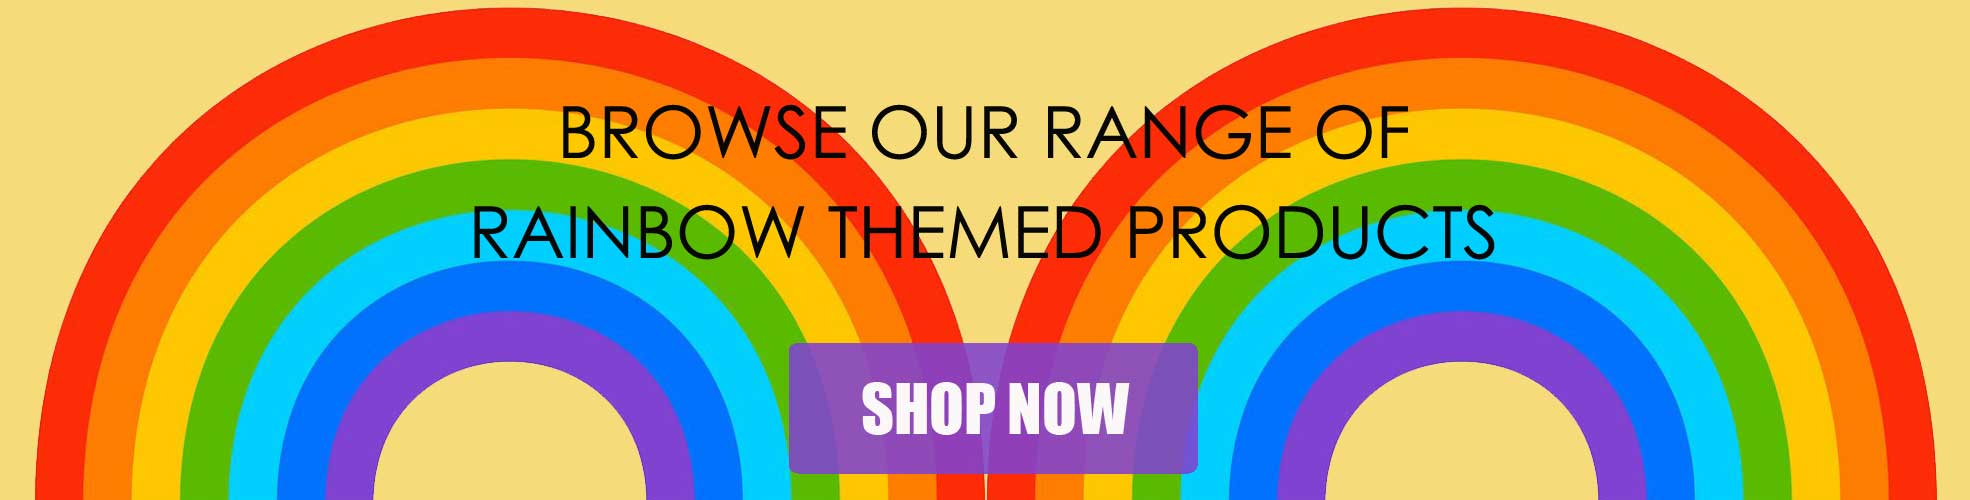 Browse our range of rainbow themed products